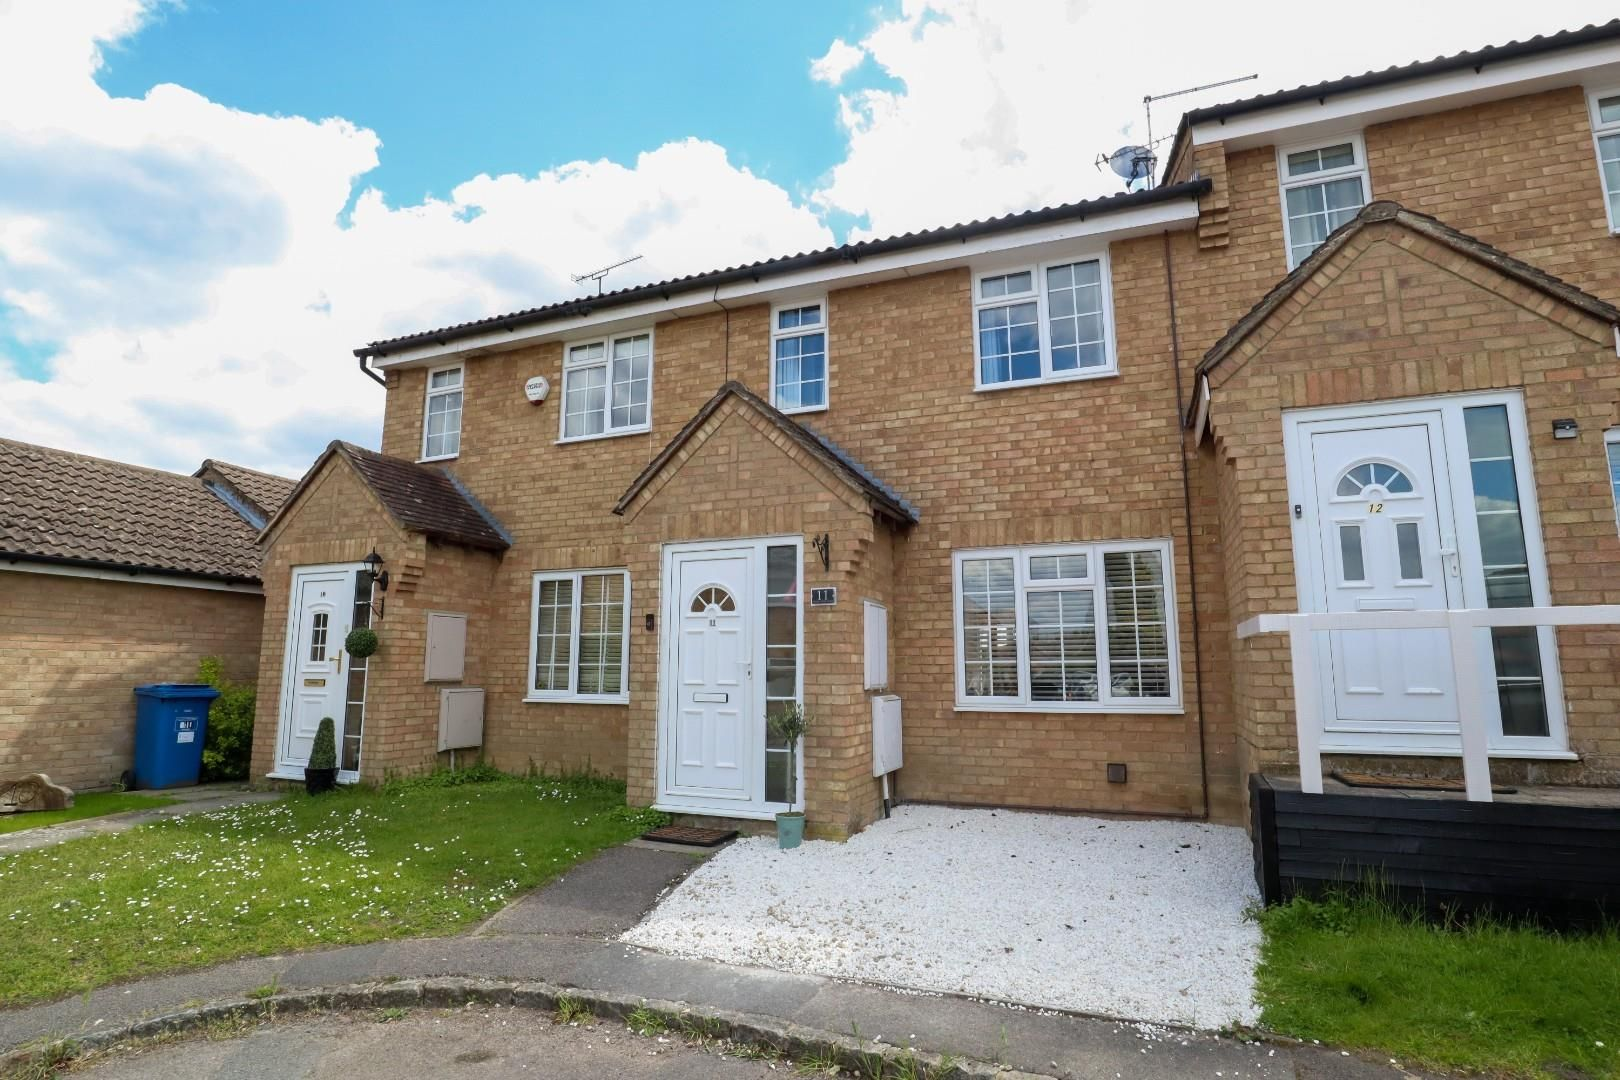 3 bed terraced for sale in Owlsmoor - Property Image 1